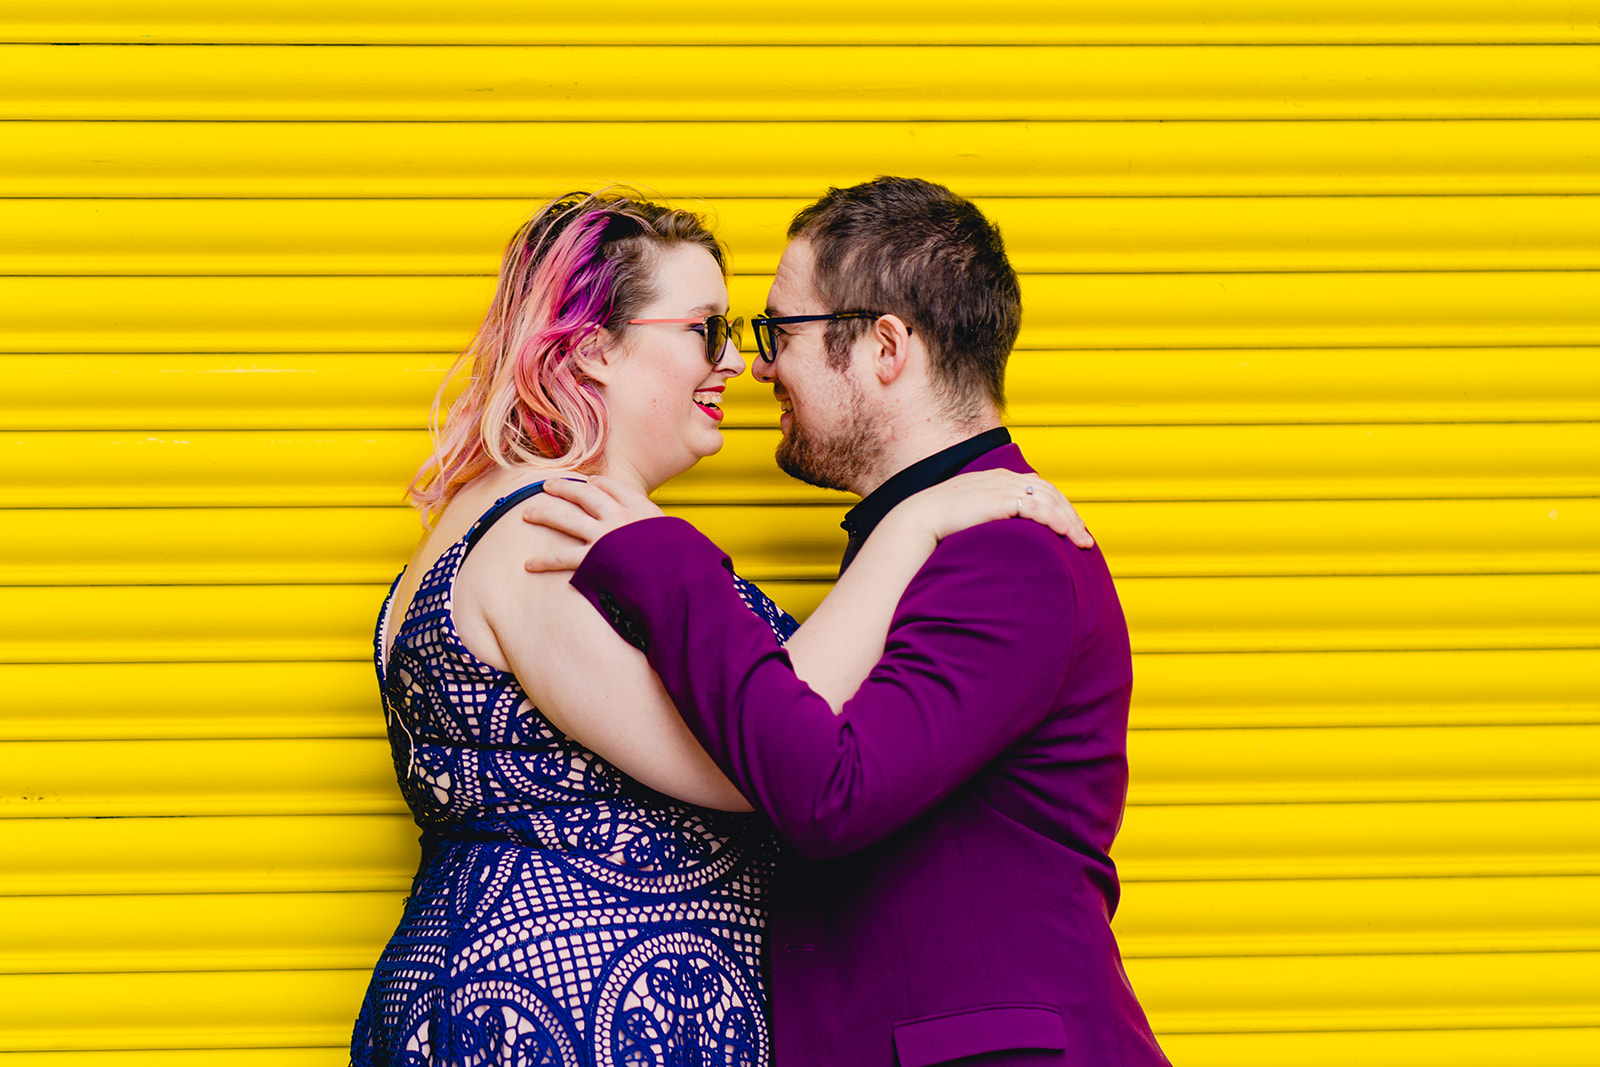 engagement shoots - birmingham engagement shoot - colourful wedding photoshoot - quirky wedding photos - fun wedding photography - alternative wedding - purple and yellow wedding photo